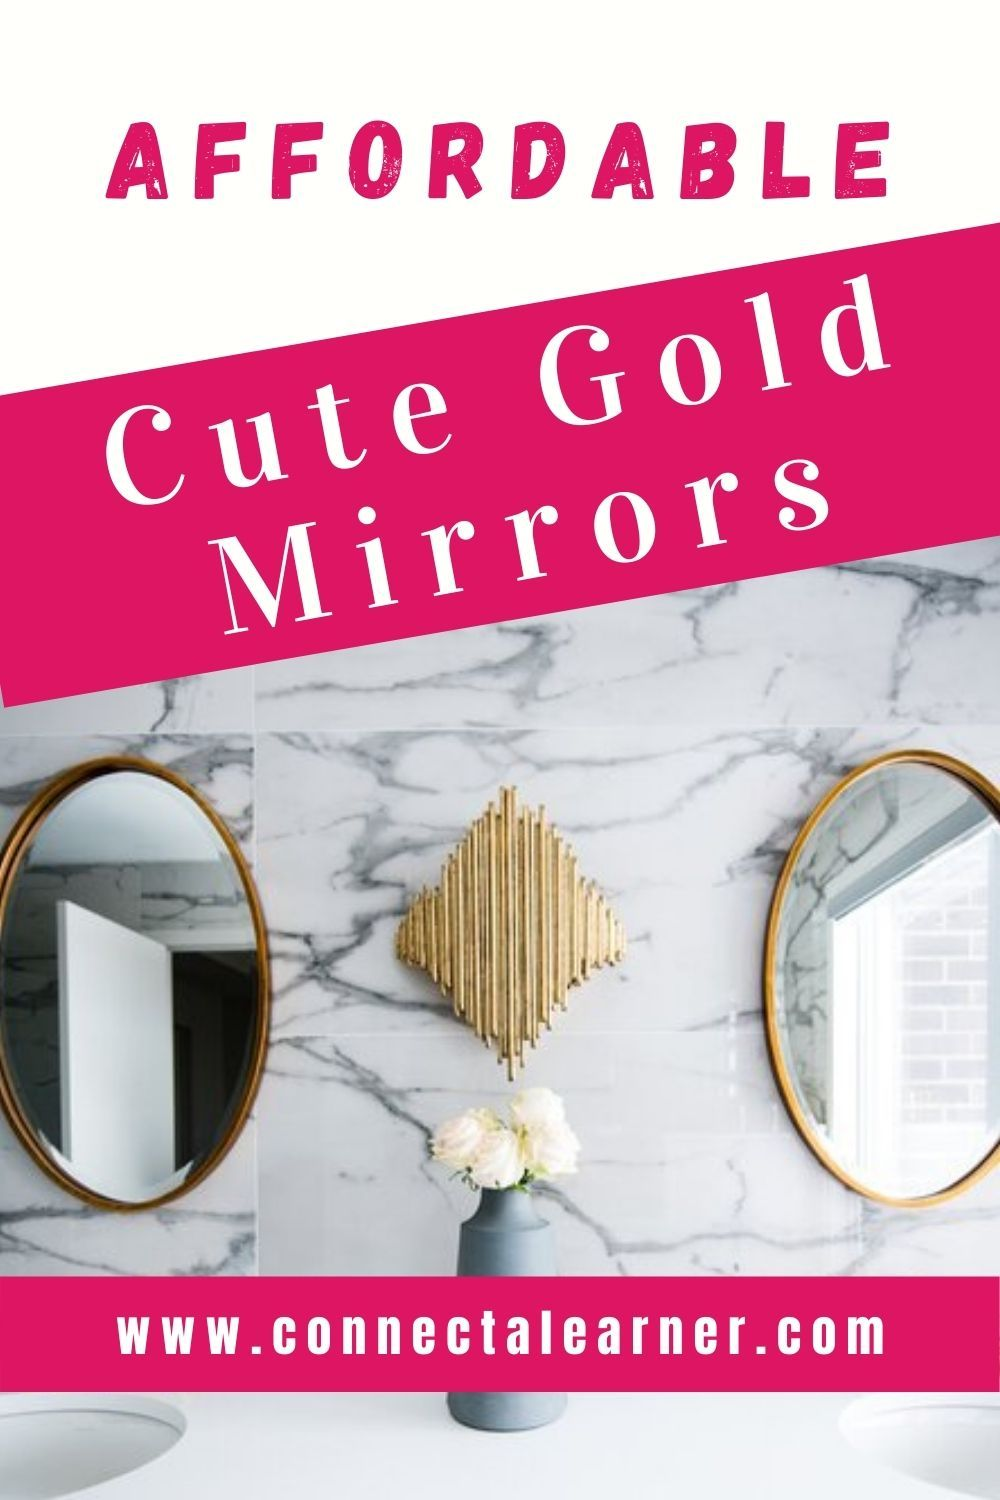 Scroll down to see a few specially chosen mirrors that will amp up the look of your space without breaking the bank. #Roomdecor #housedecoration #DecorationIdeas room_decor_ideas